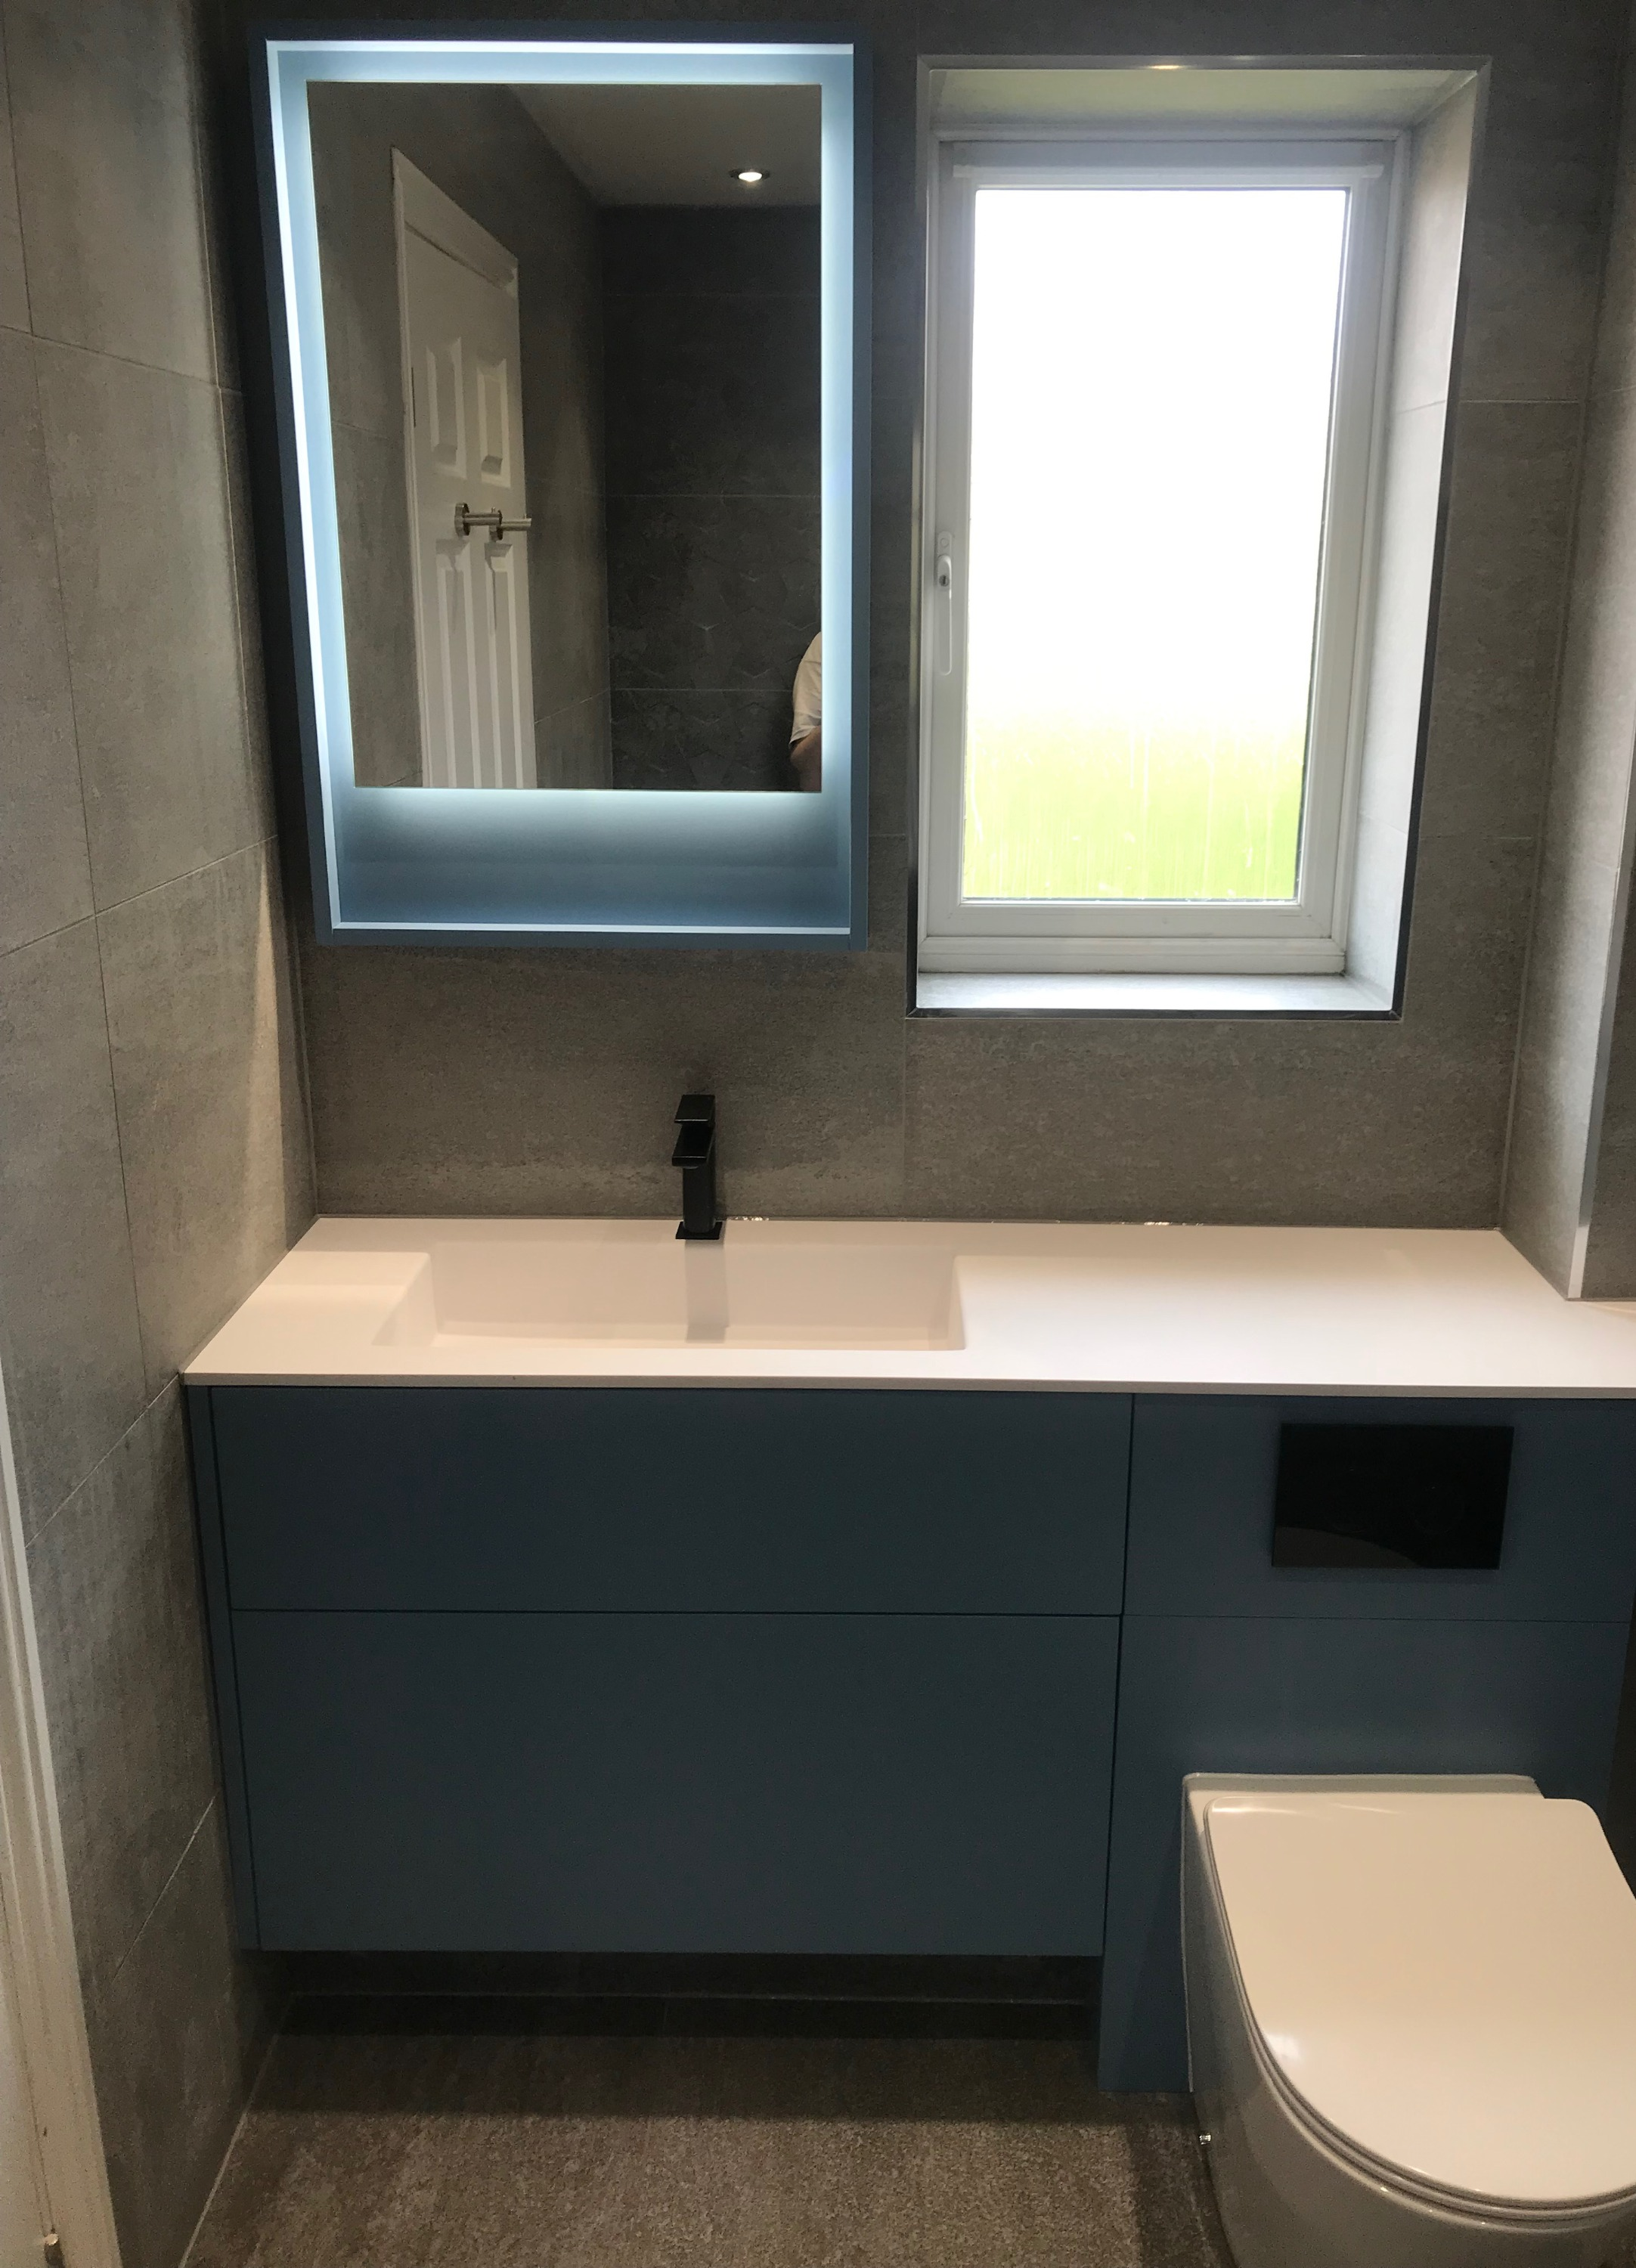 CHELLESTON, ENSUITE MAKEOVER